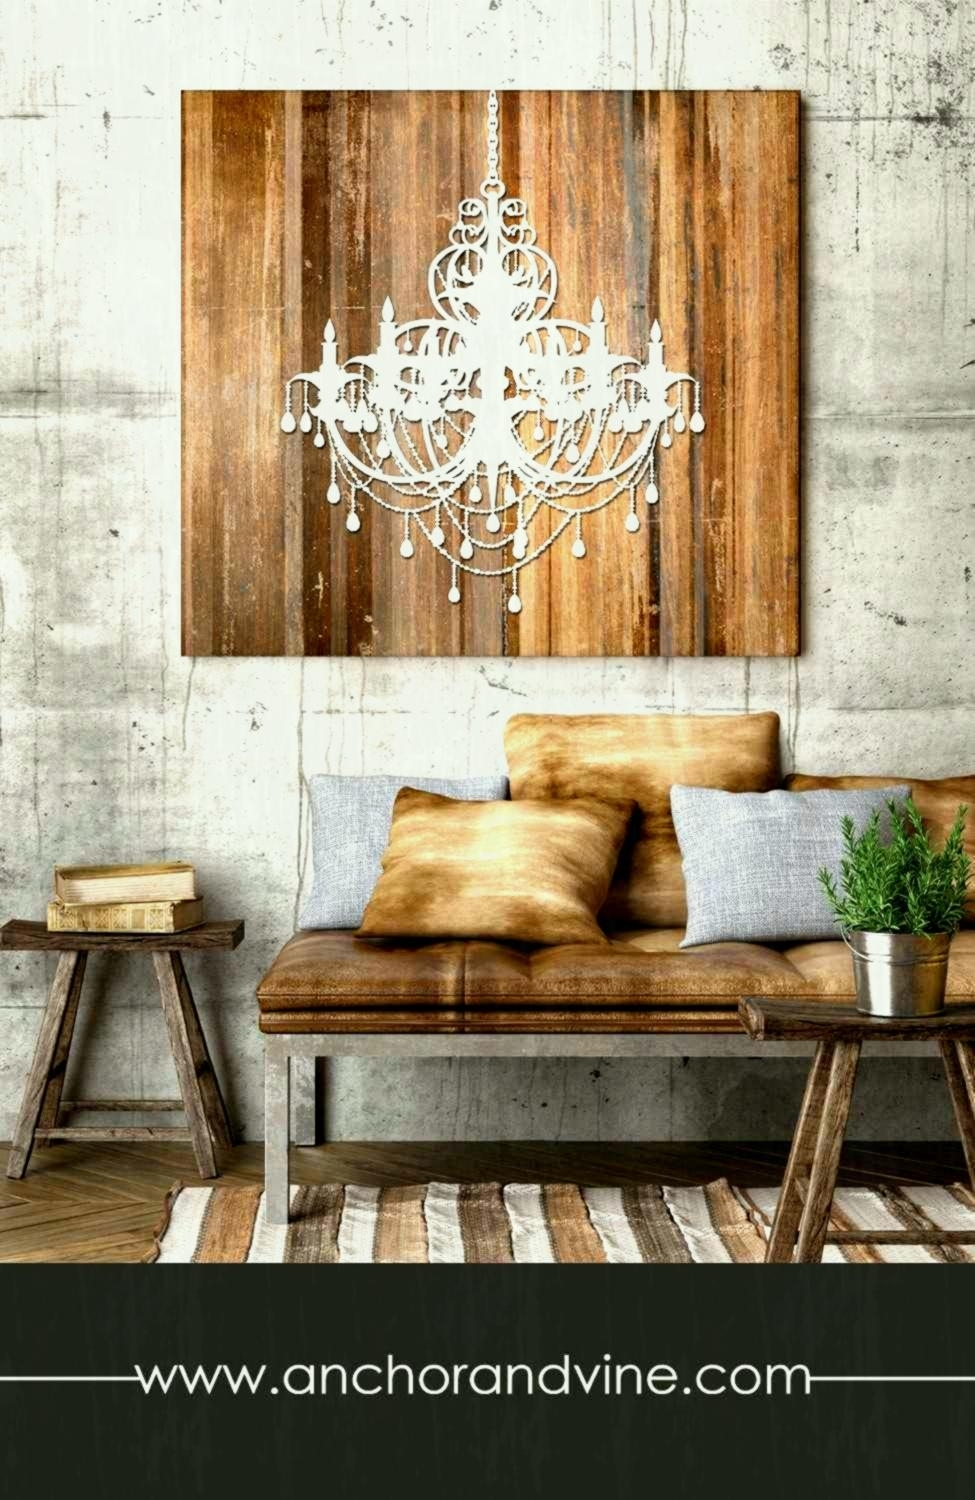 Large Chandelier Wall Art Unique Canvas Oversized Decor Of For Most Current Chandelier Wall Art (Gallery 18 of 20)